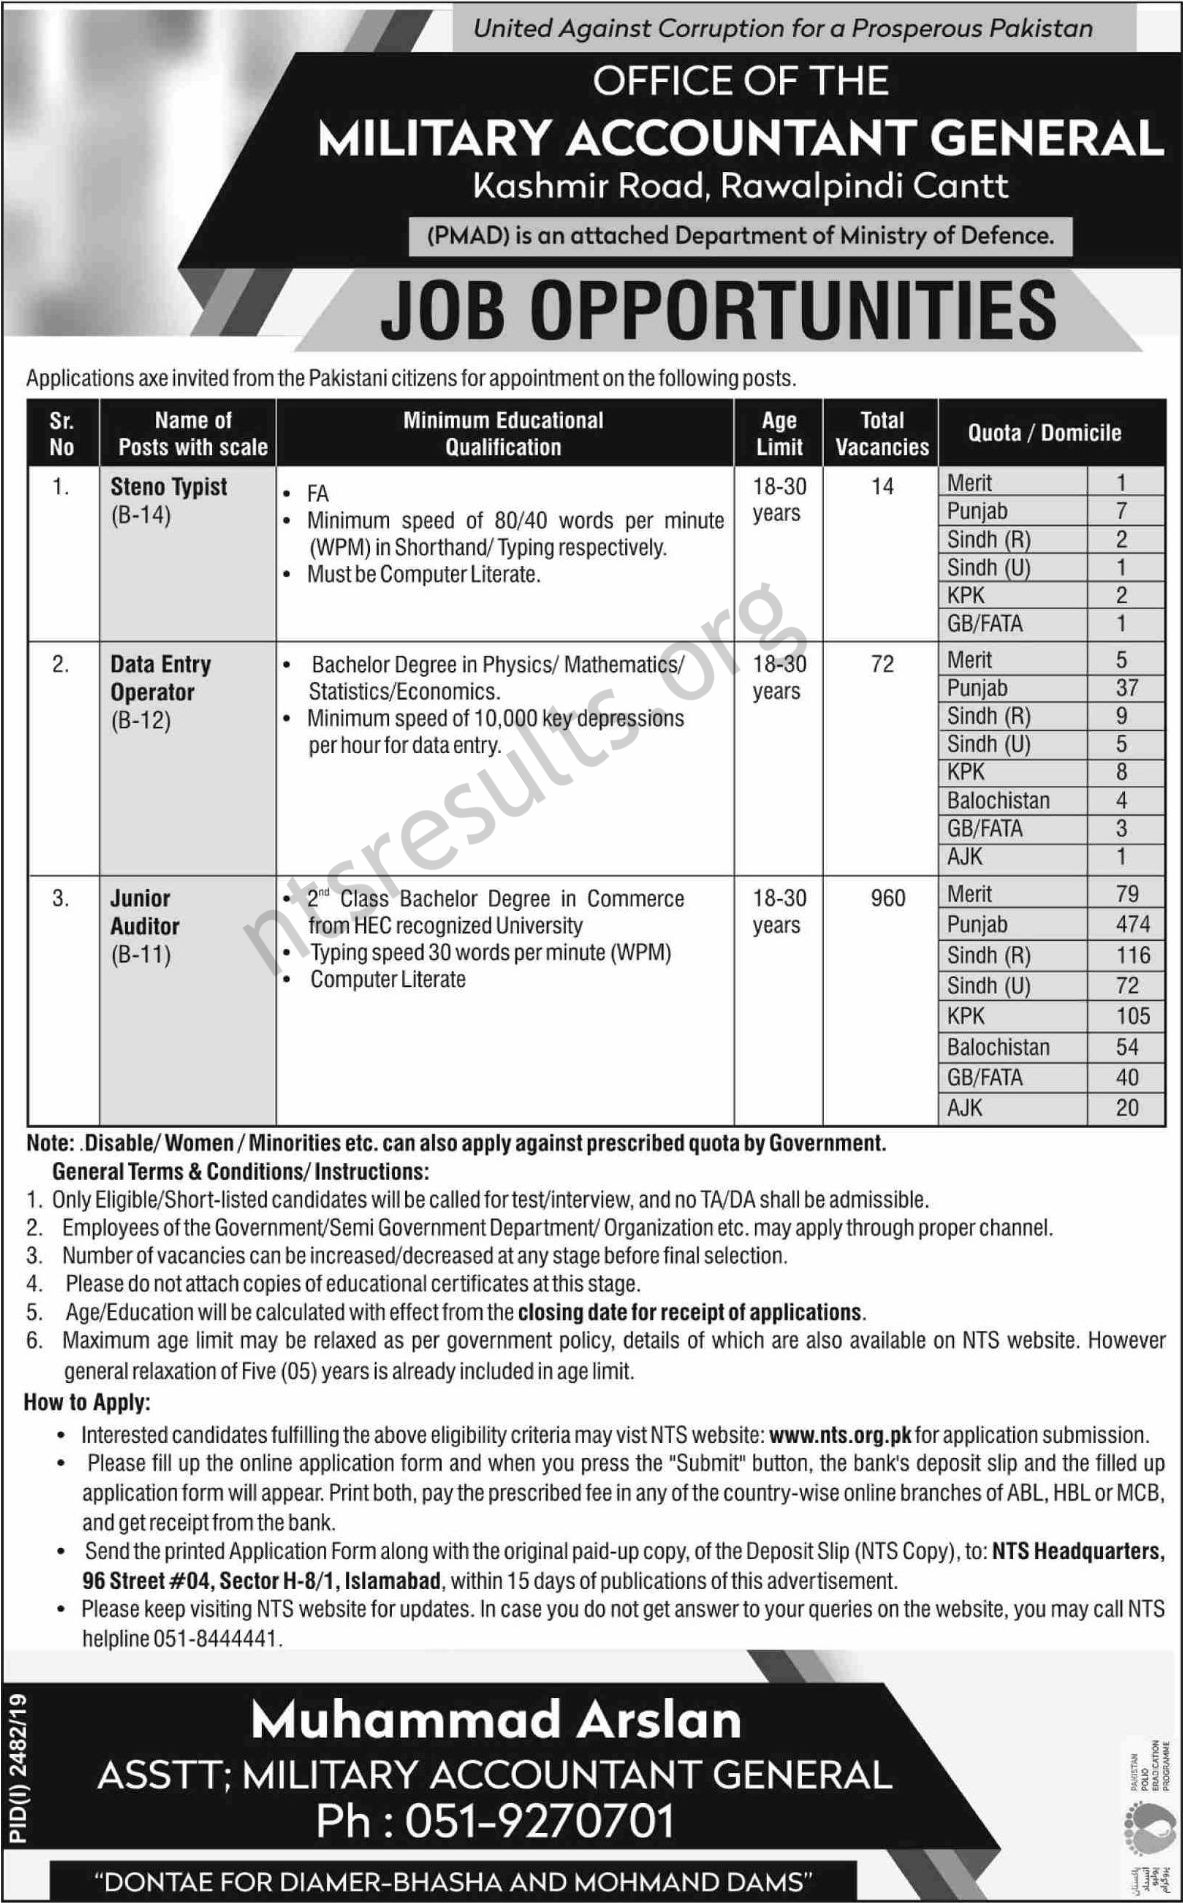 Military Accountant General Office PMAD Jobs NTS Test Roll No Slip